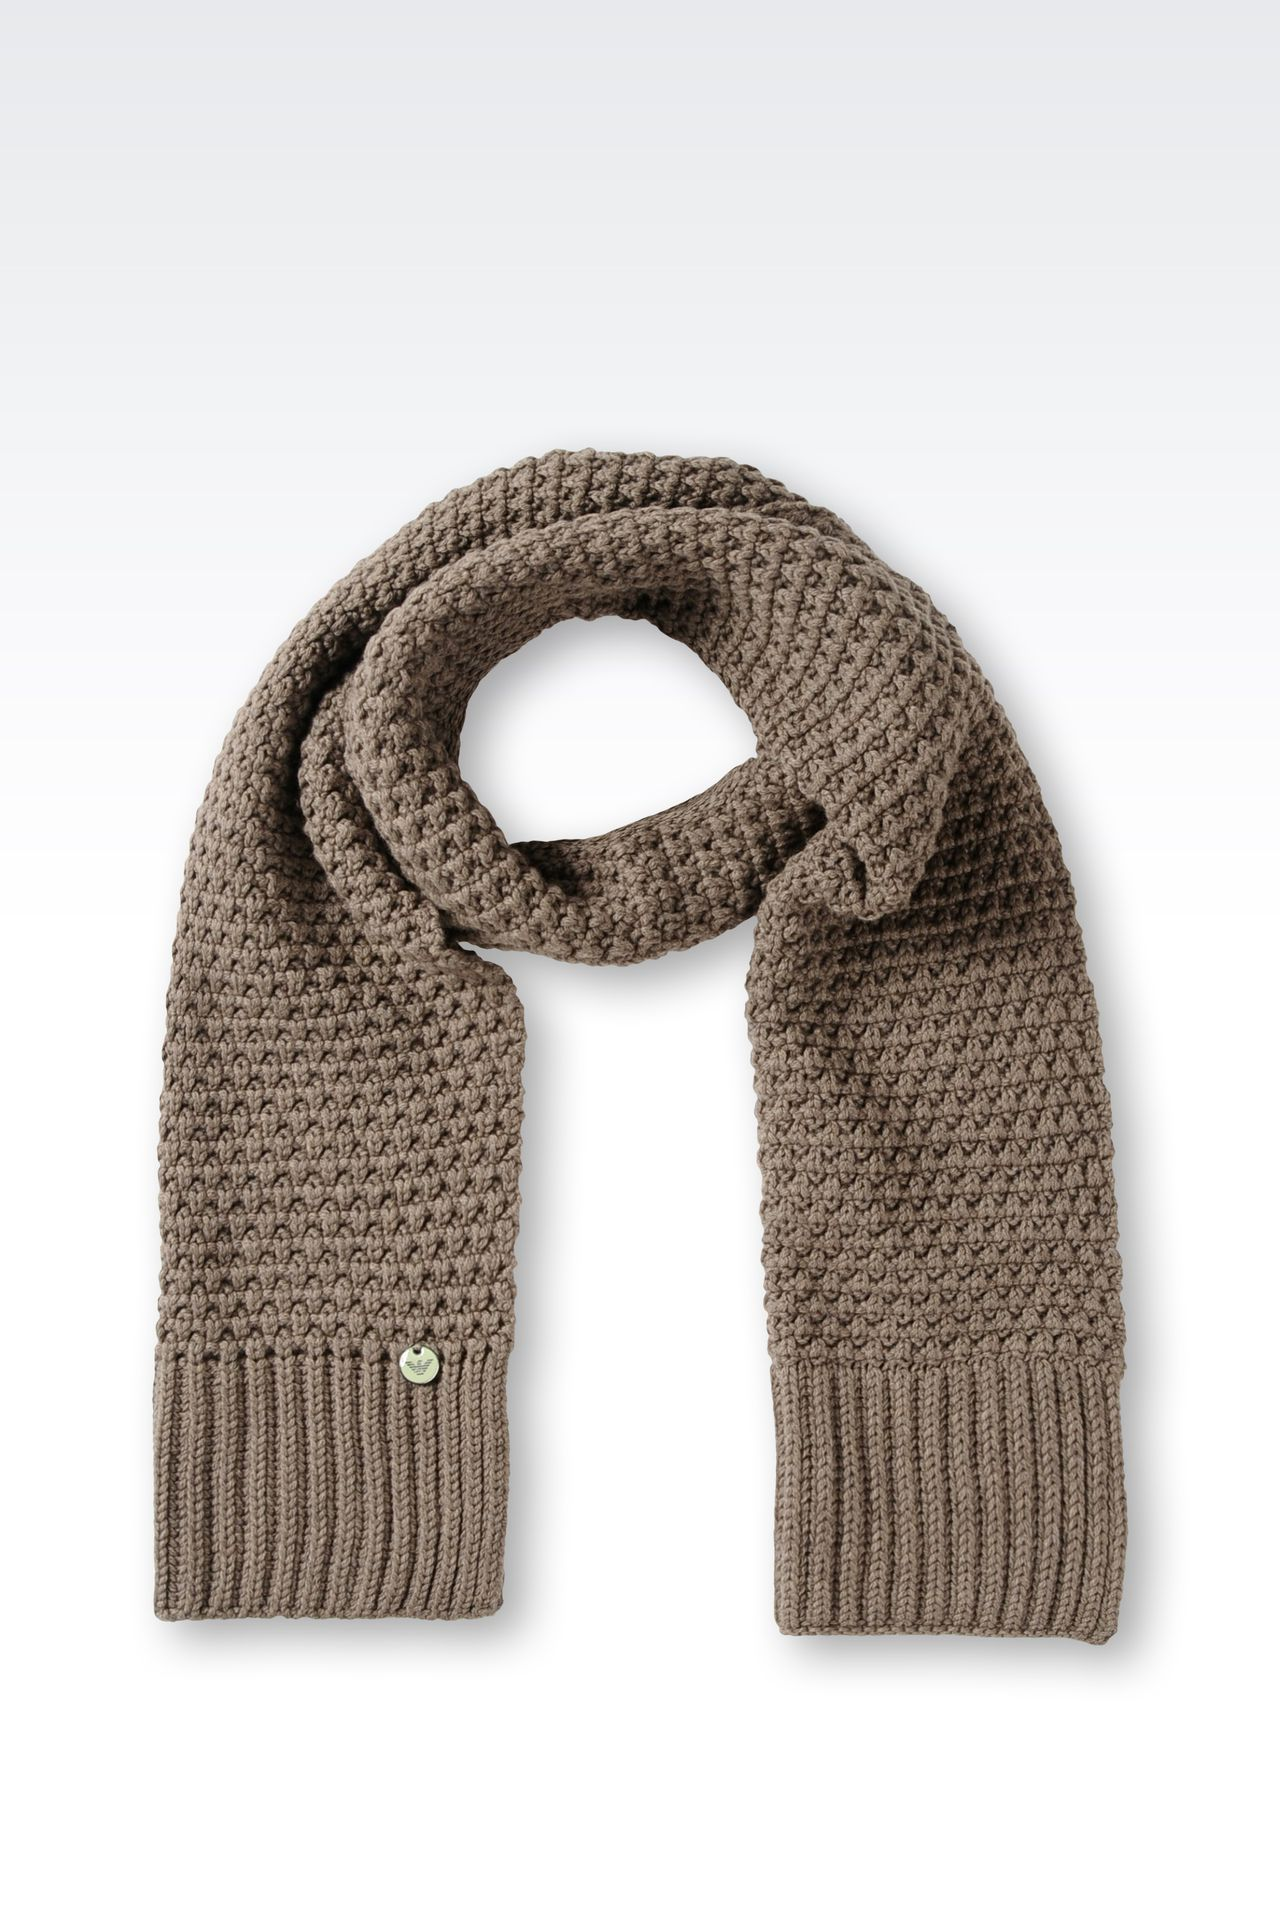 OTHER ACCESSORIES: Scarves Women by Armani - 0